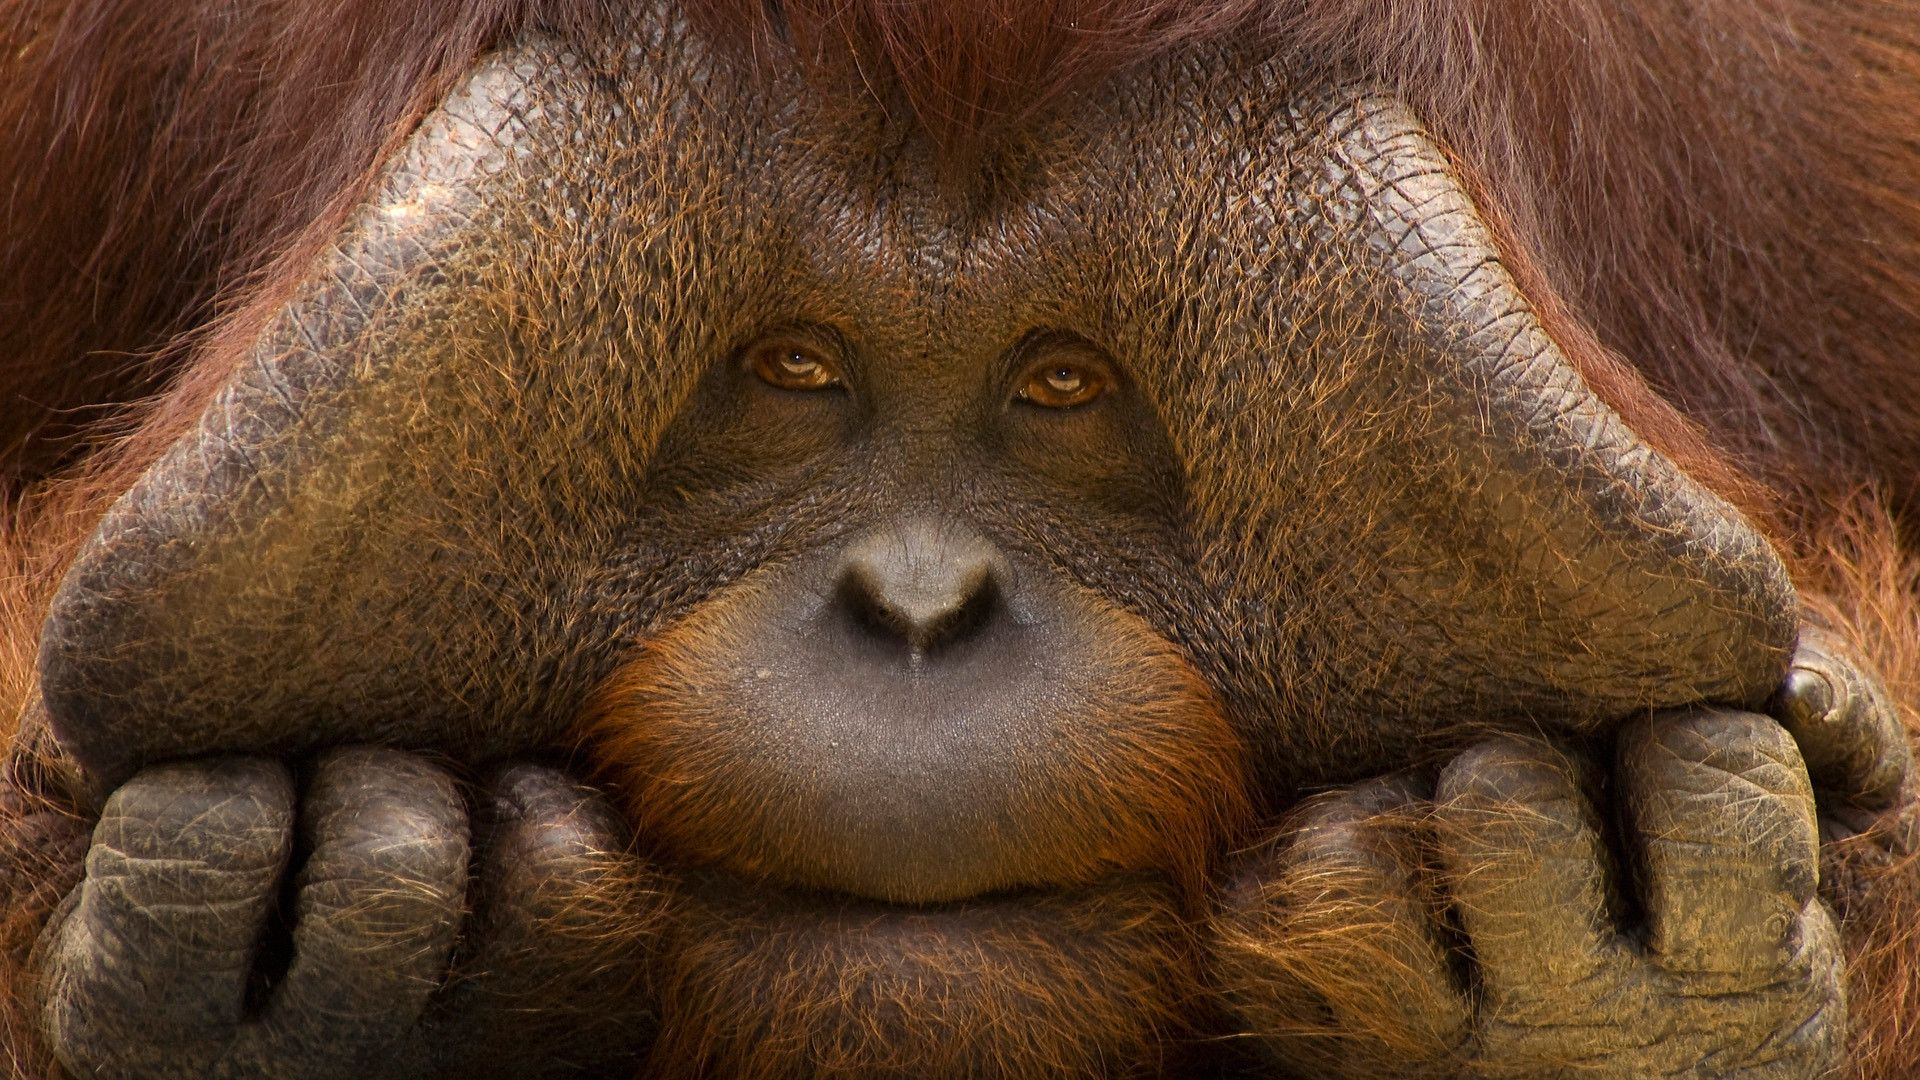 Orangutan Backgrounds